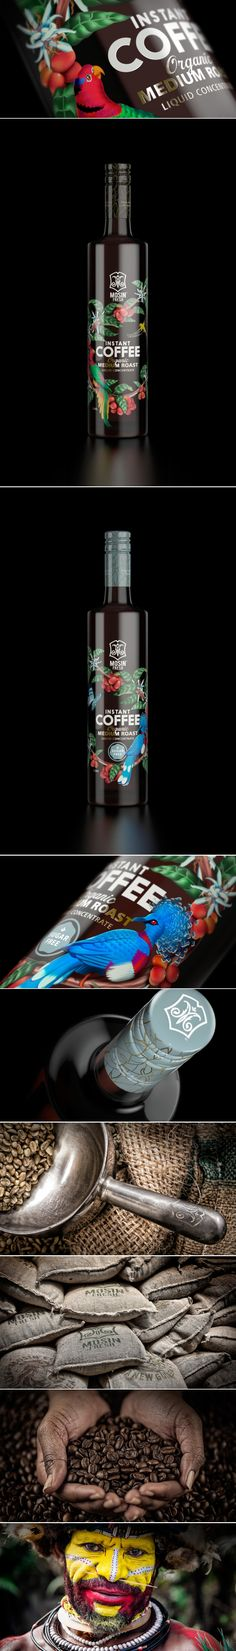 Mosin Fresh Coffee Concentrate — The Dieline   Packaging & Branding Design & Innovation News